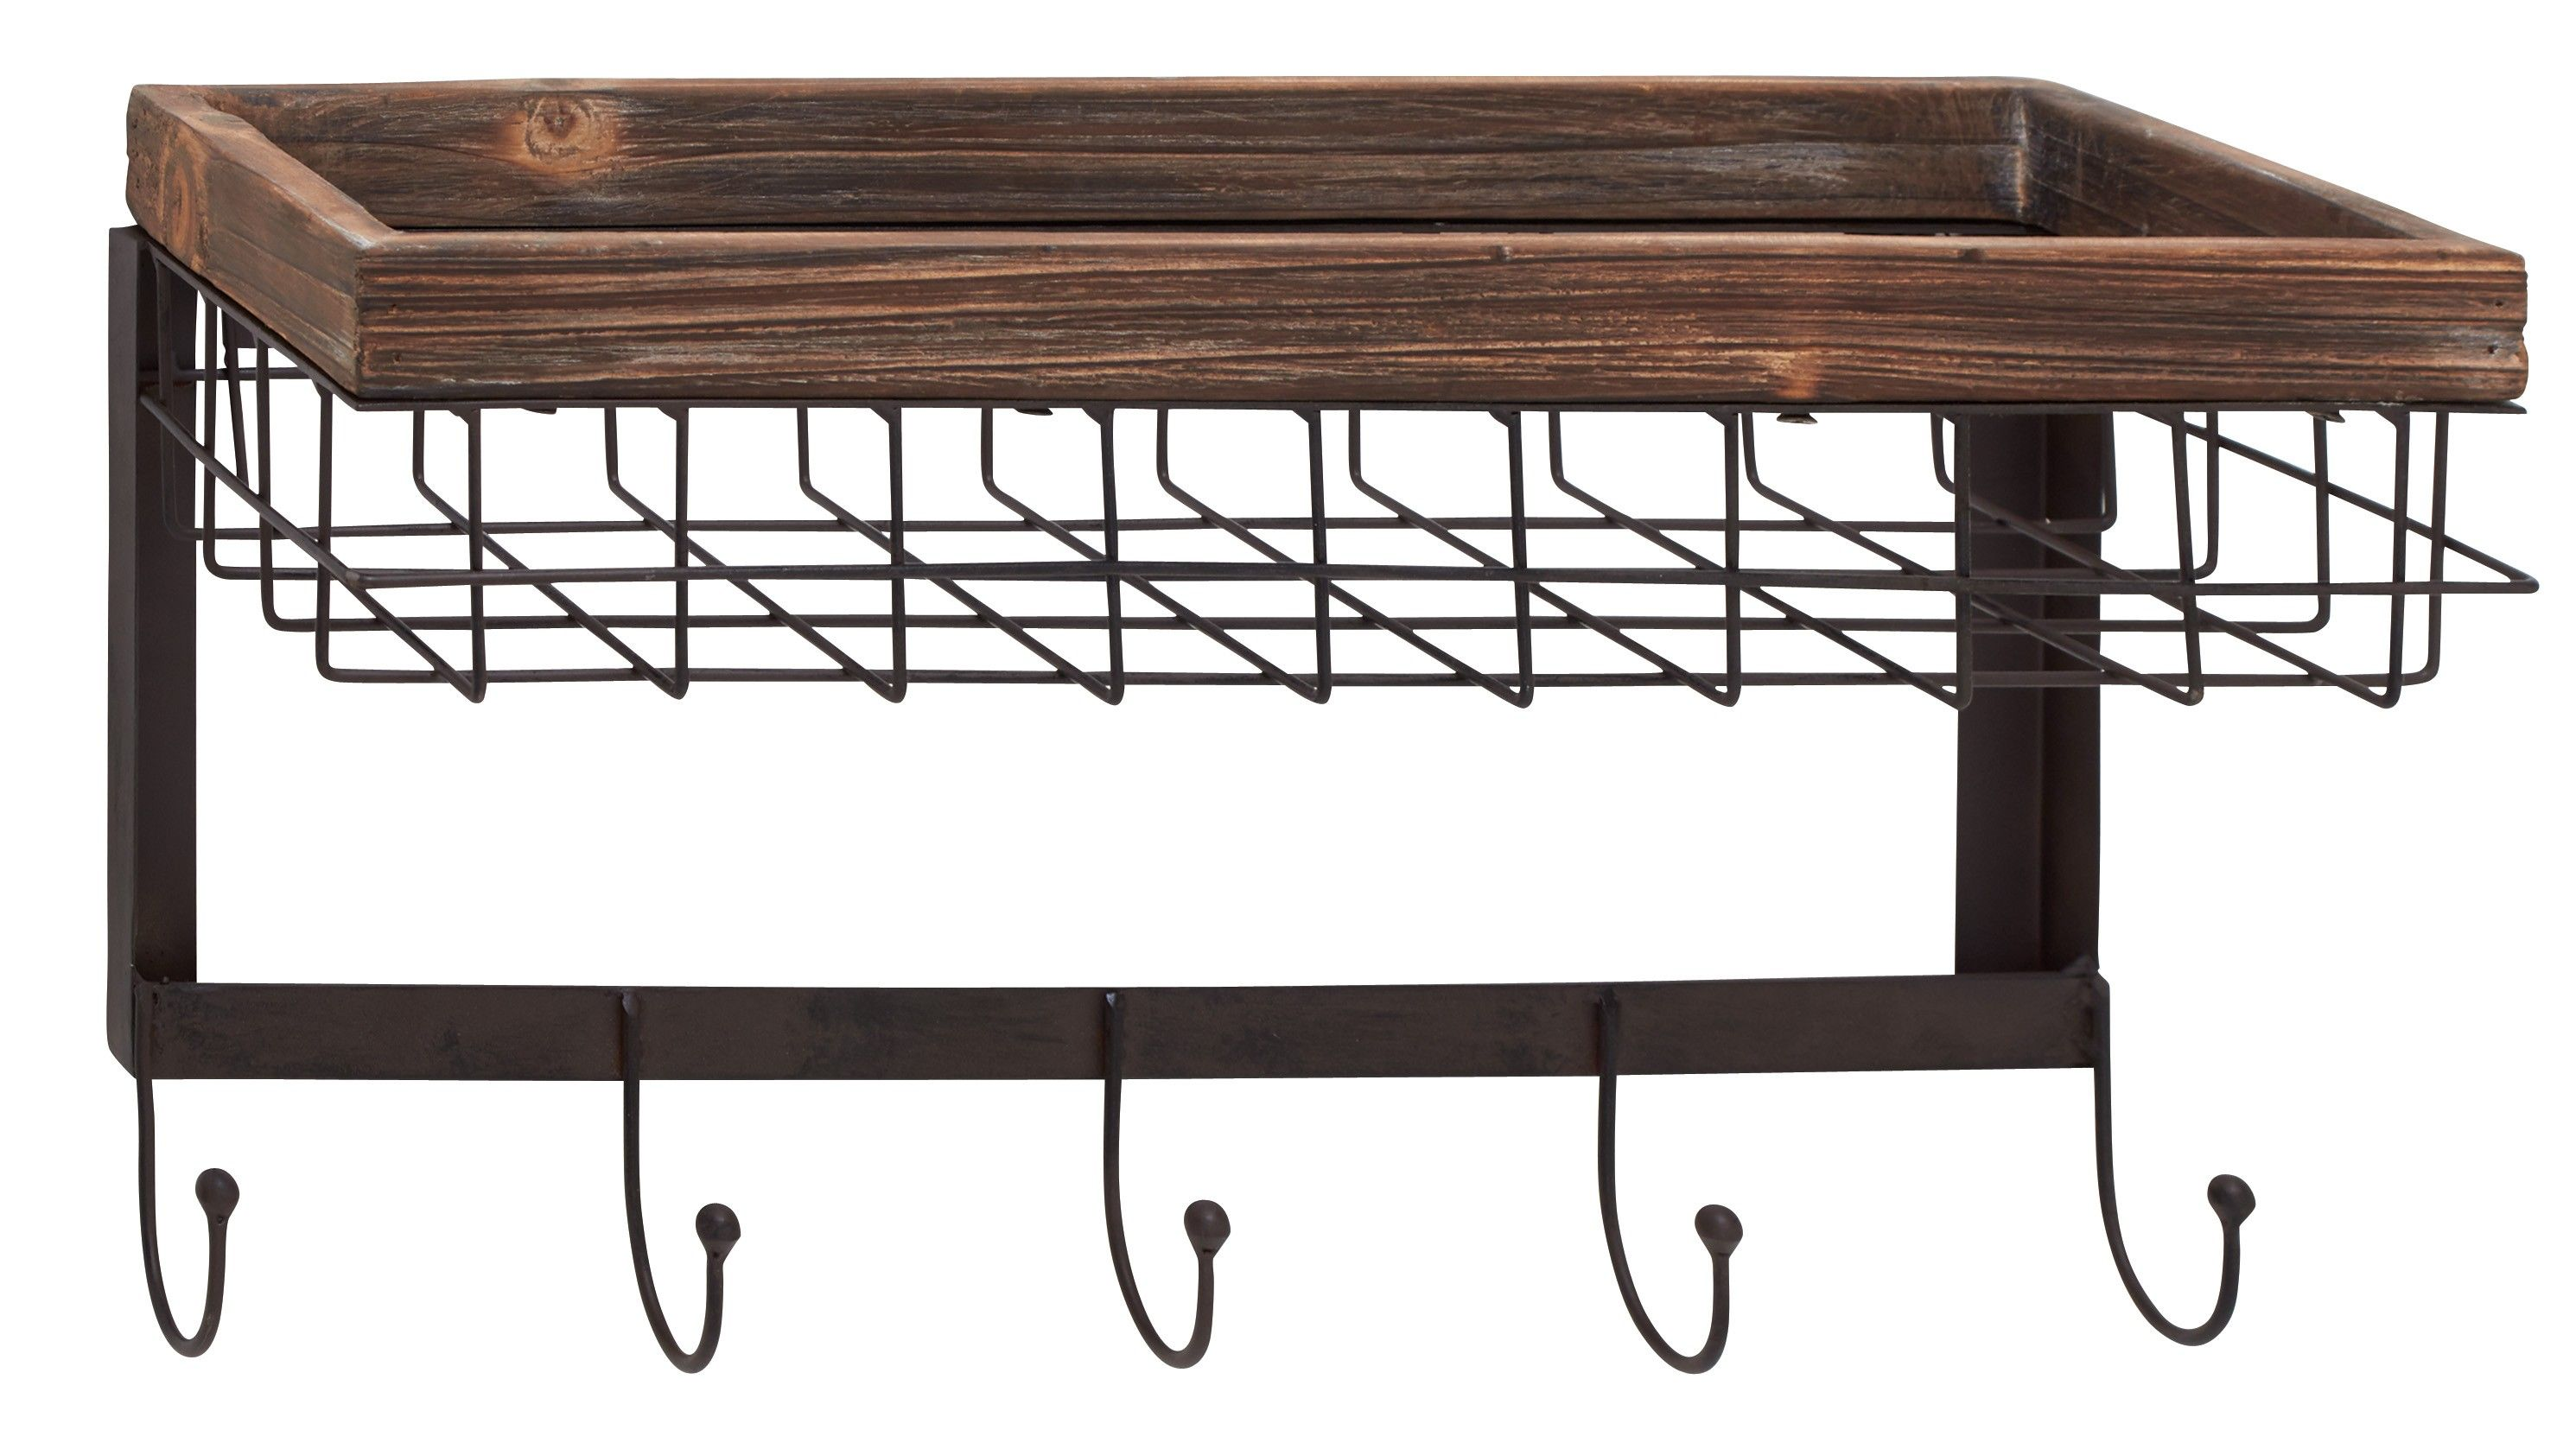 Contemporary Inspired Style Wood Metal Wall Basket Hook Home D